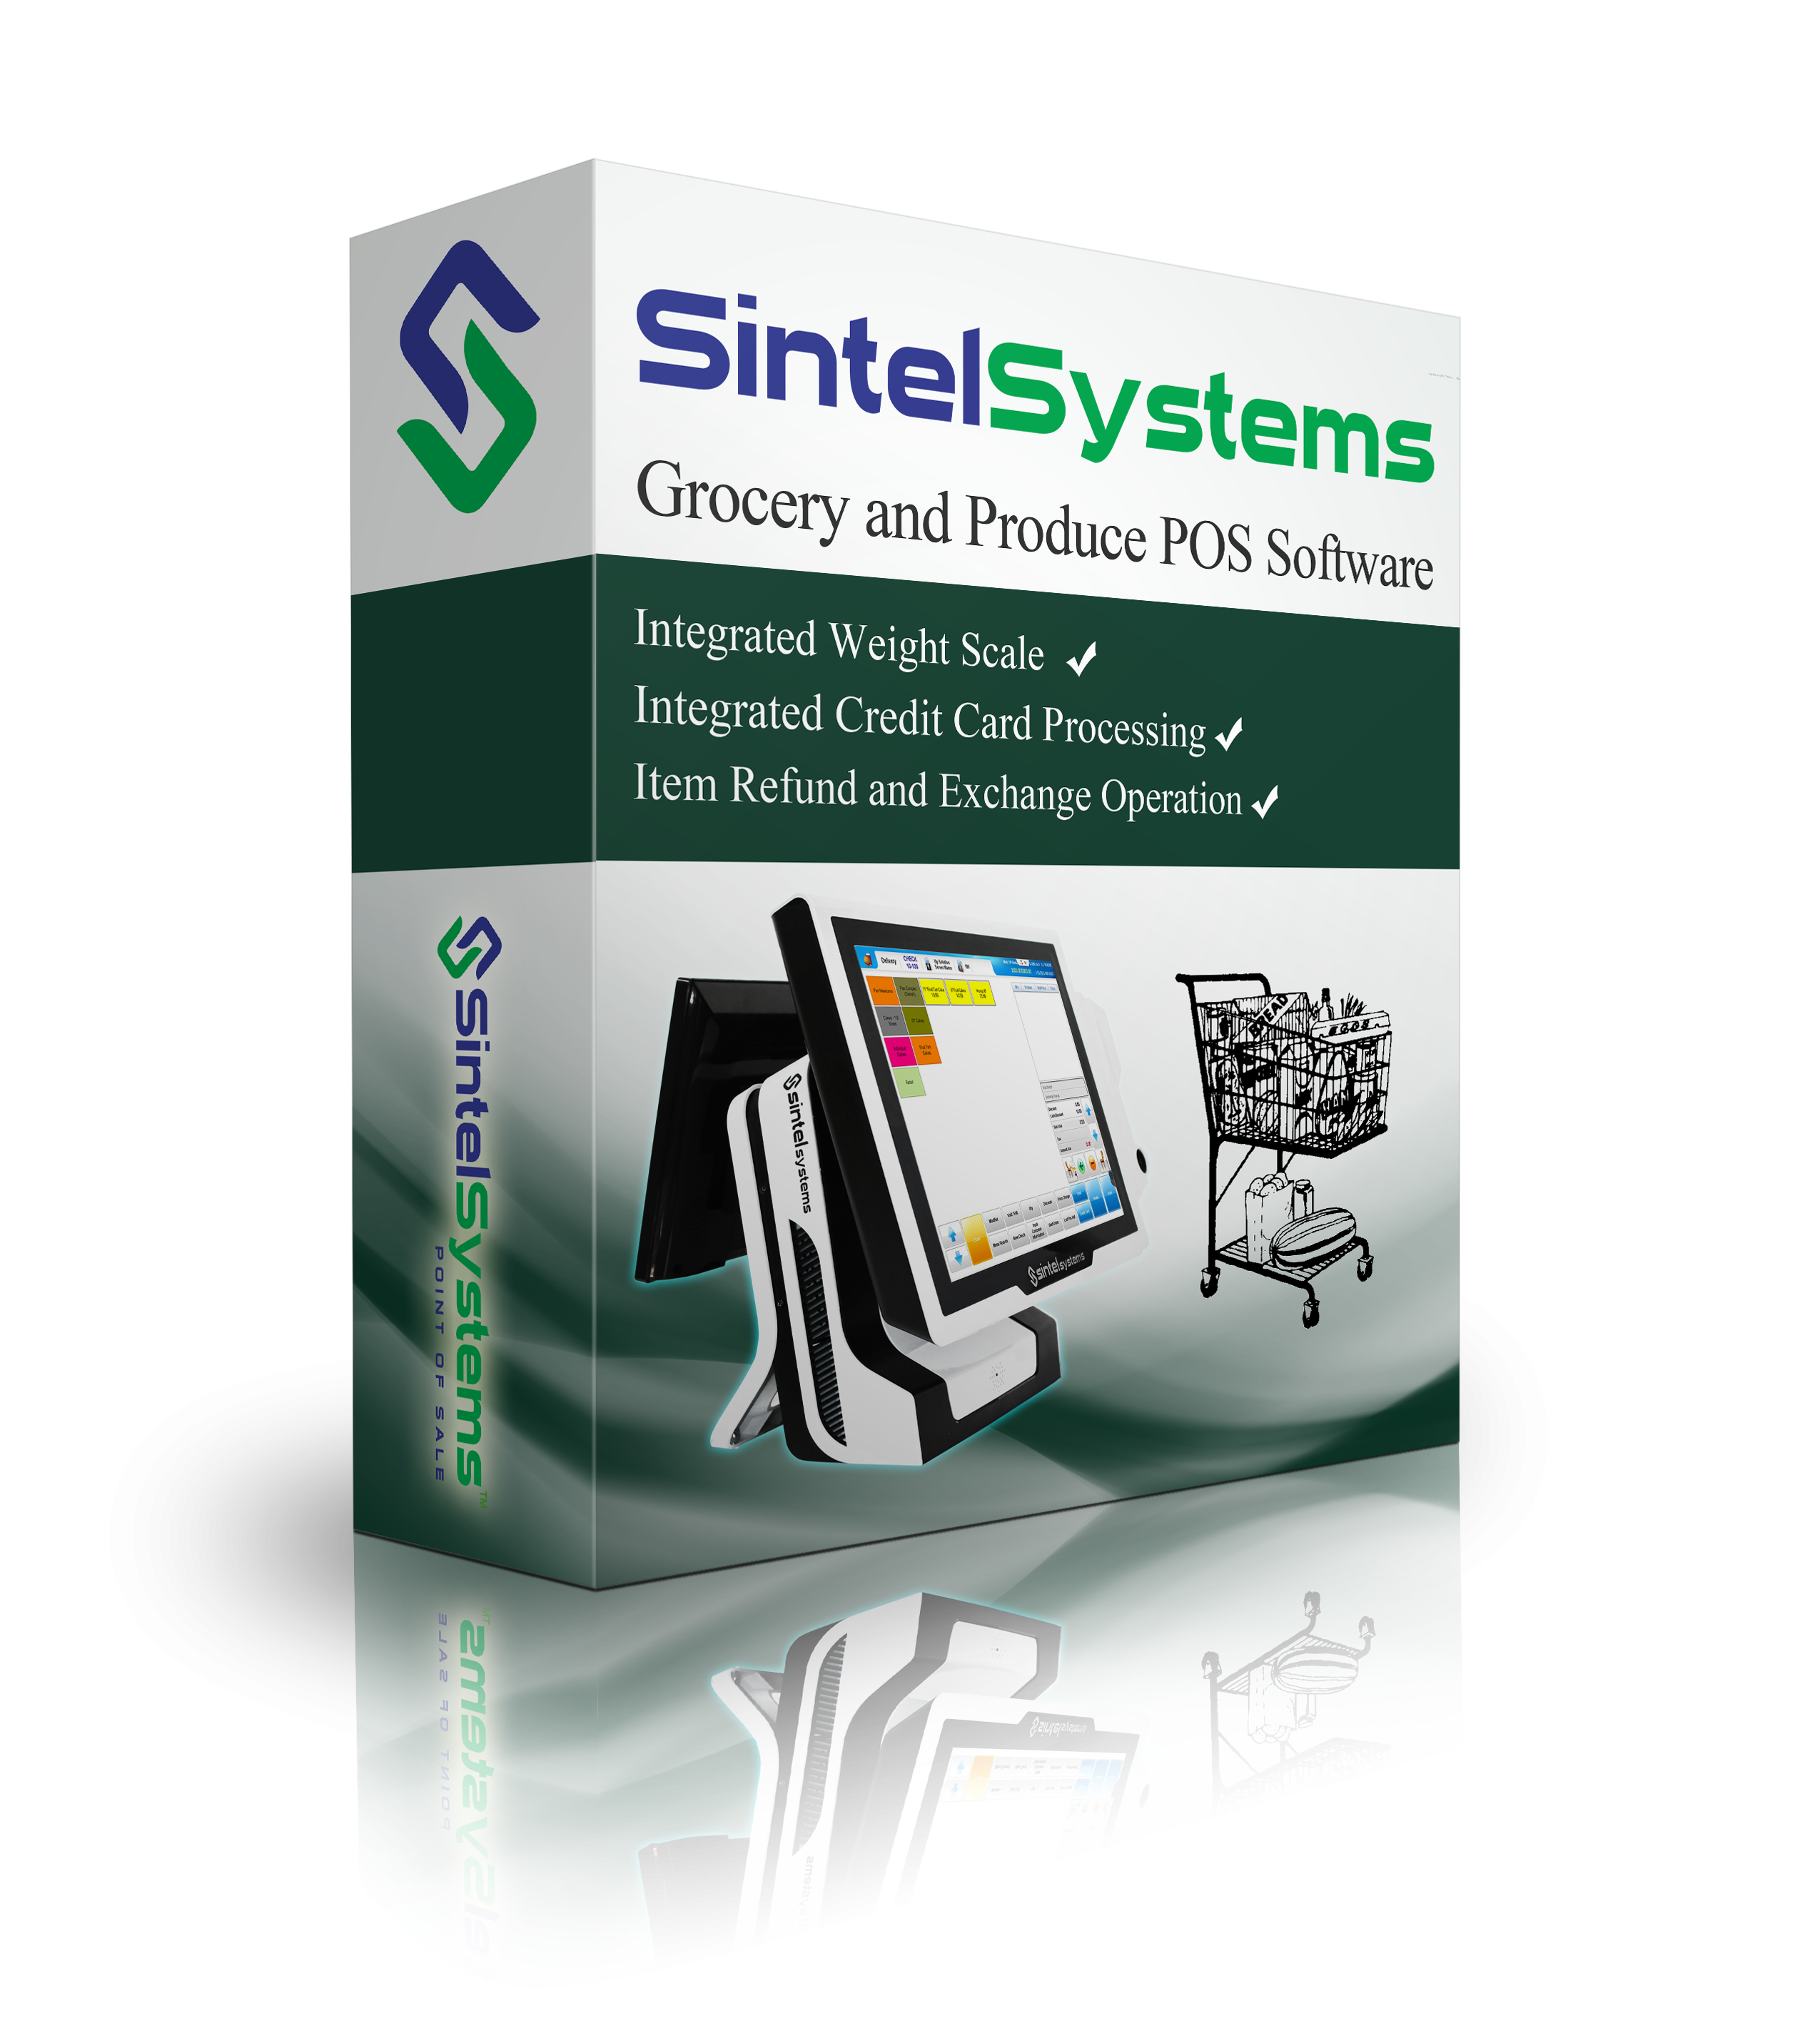 Sintel-System-Grocery-POS-Software